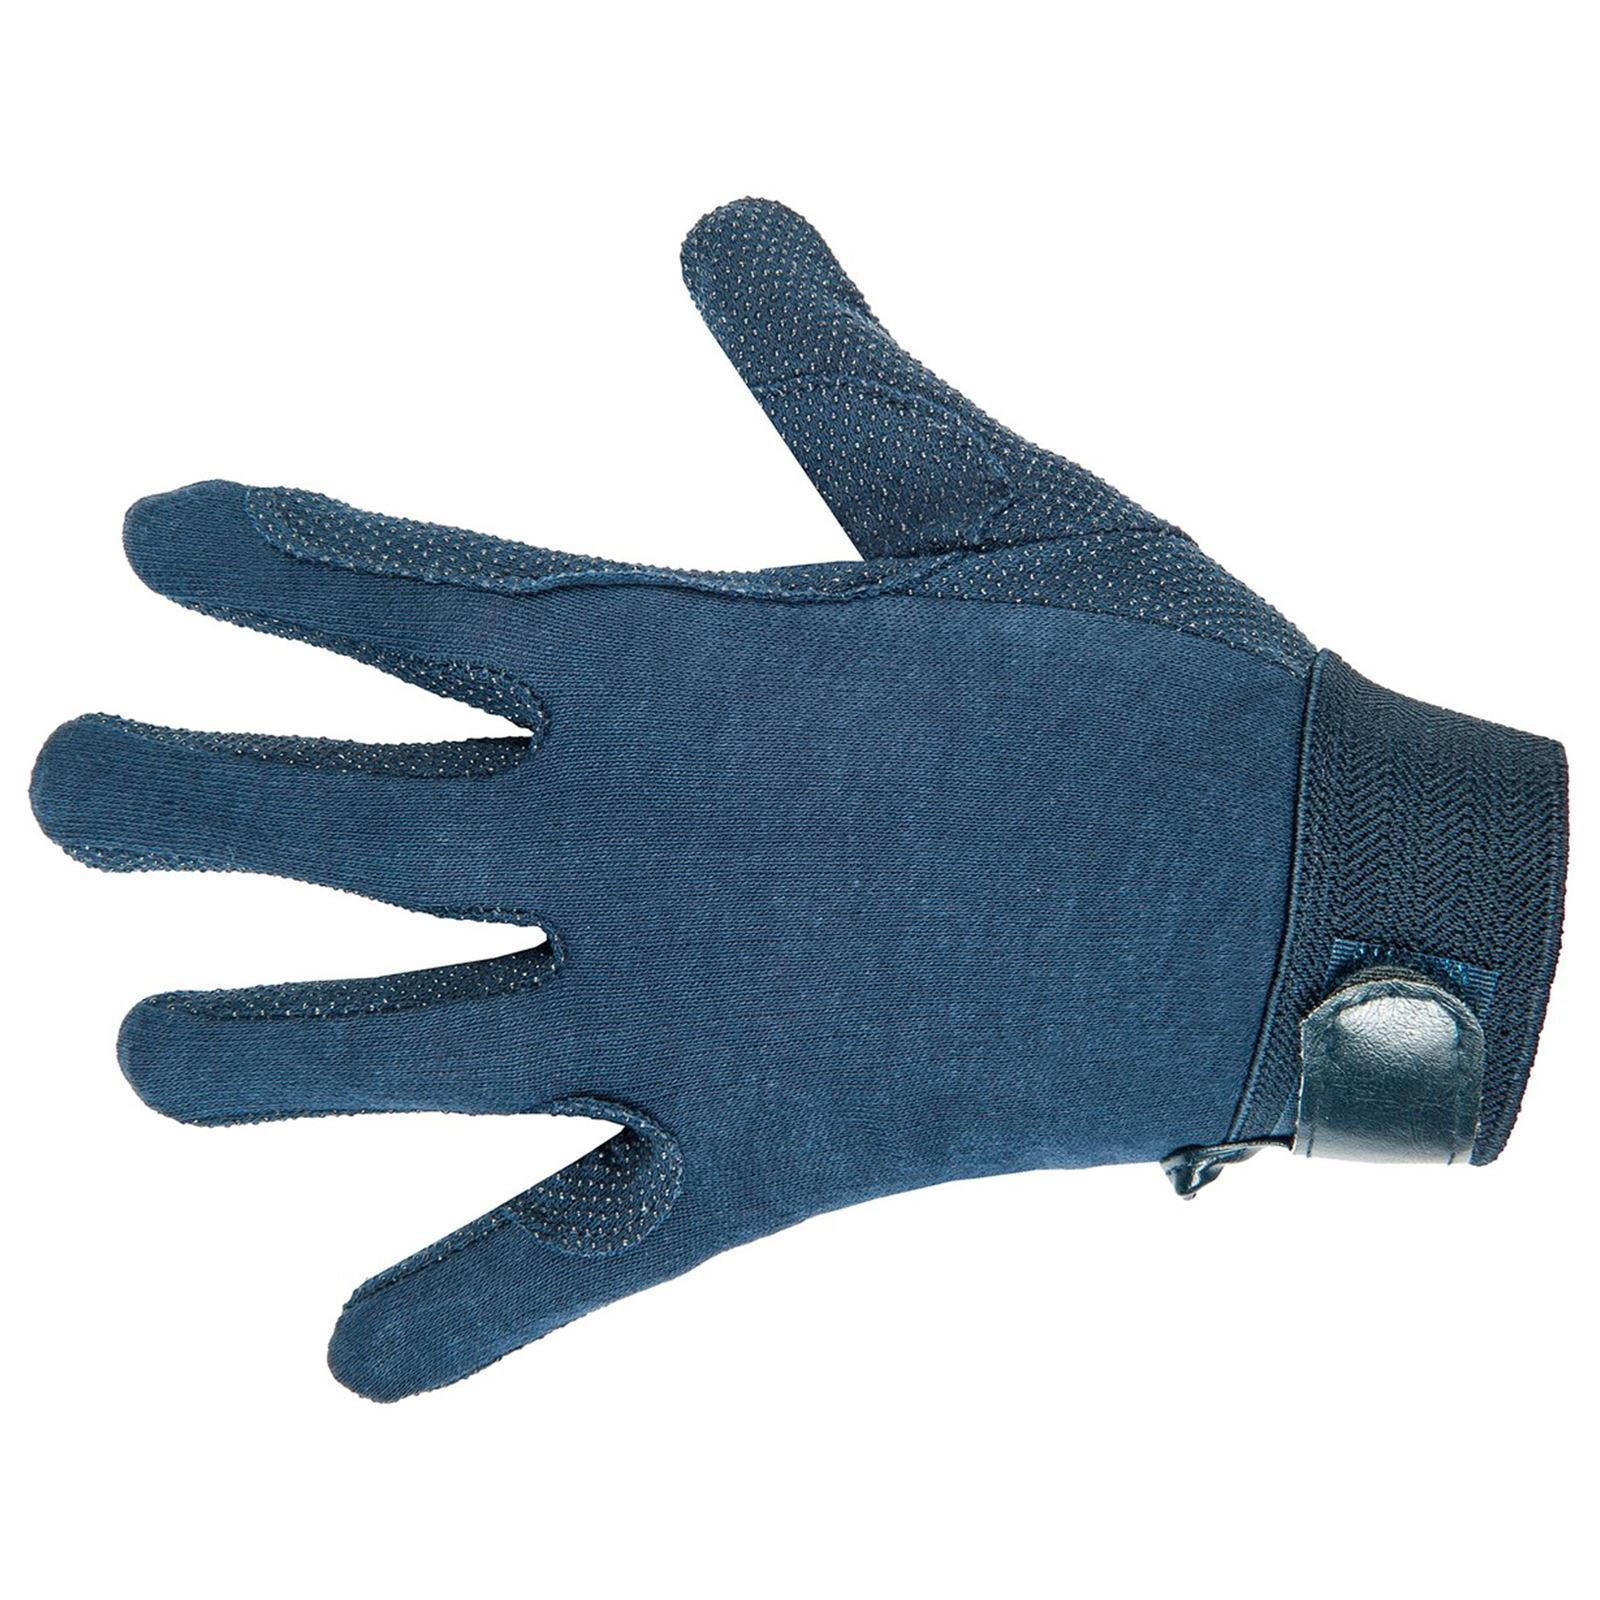 HKM Equestrian Riding Breathable Cotton Durable Comfort Grip Horse Rider Gloves